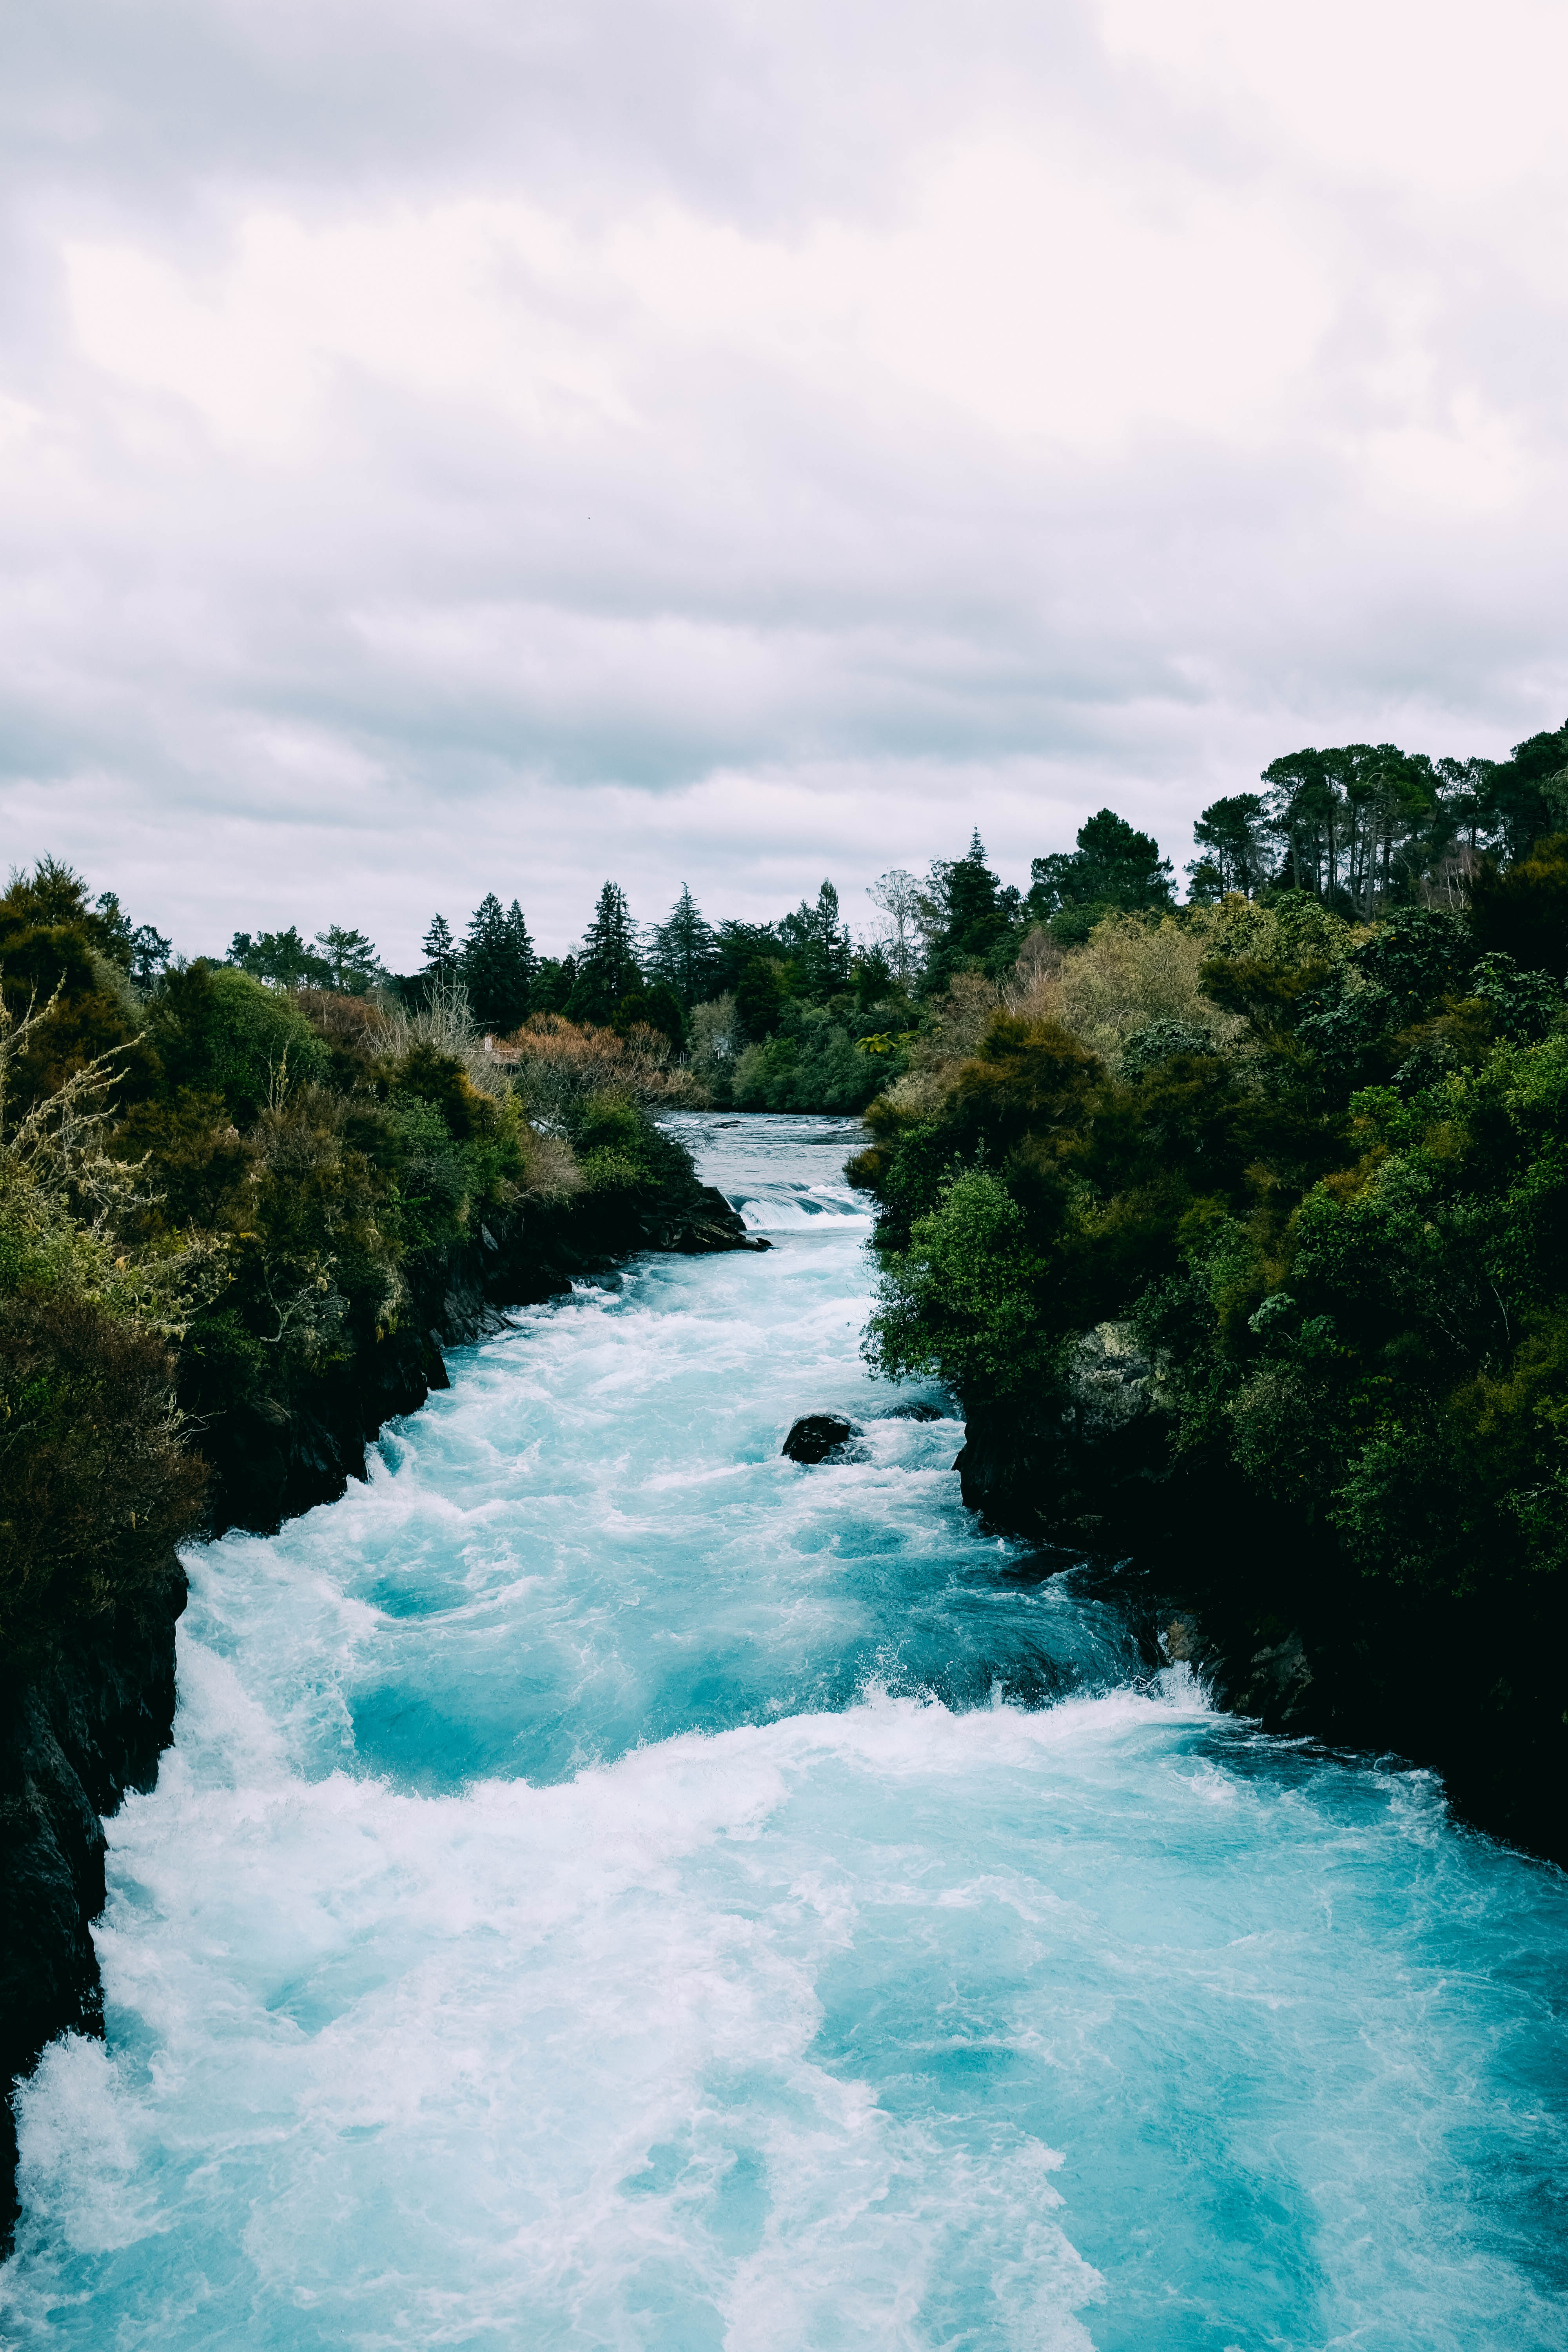 136626 download wallpaper Nature, Rivers, Trees, Waves, Flow screensavers and pictures for free